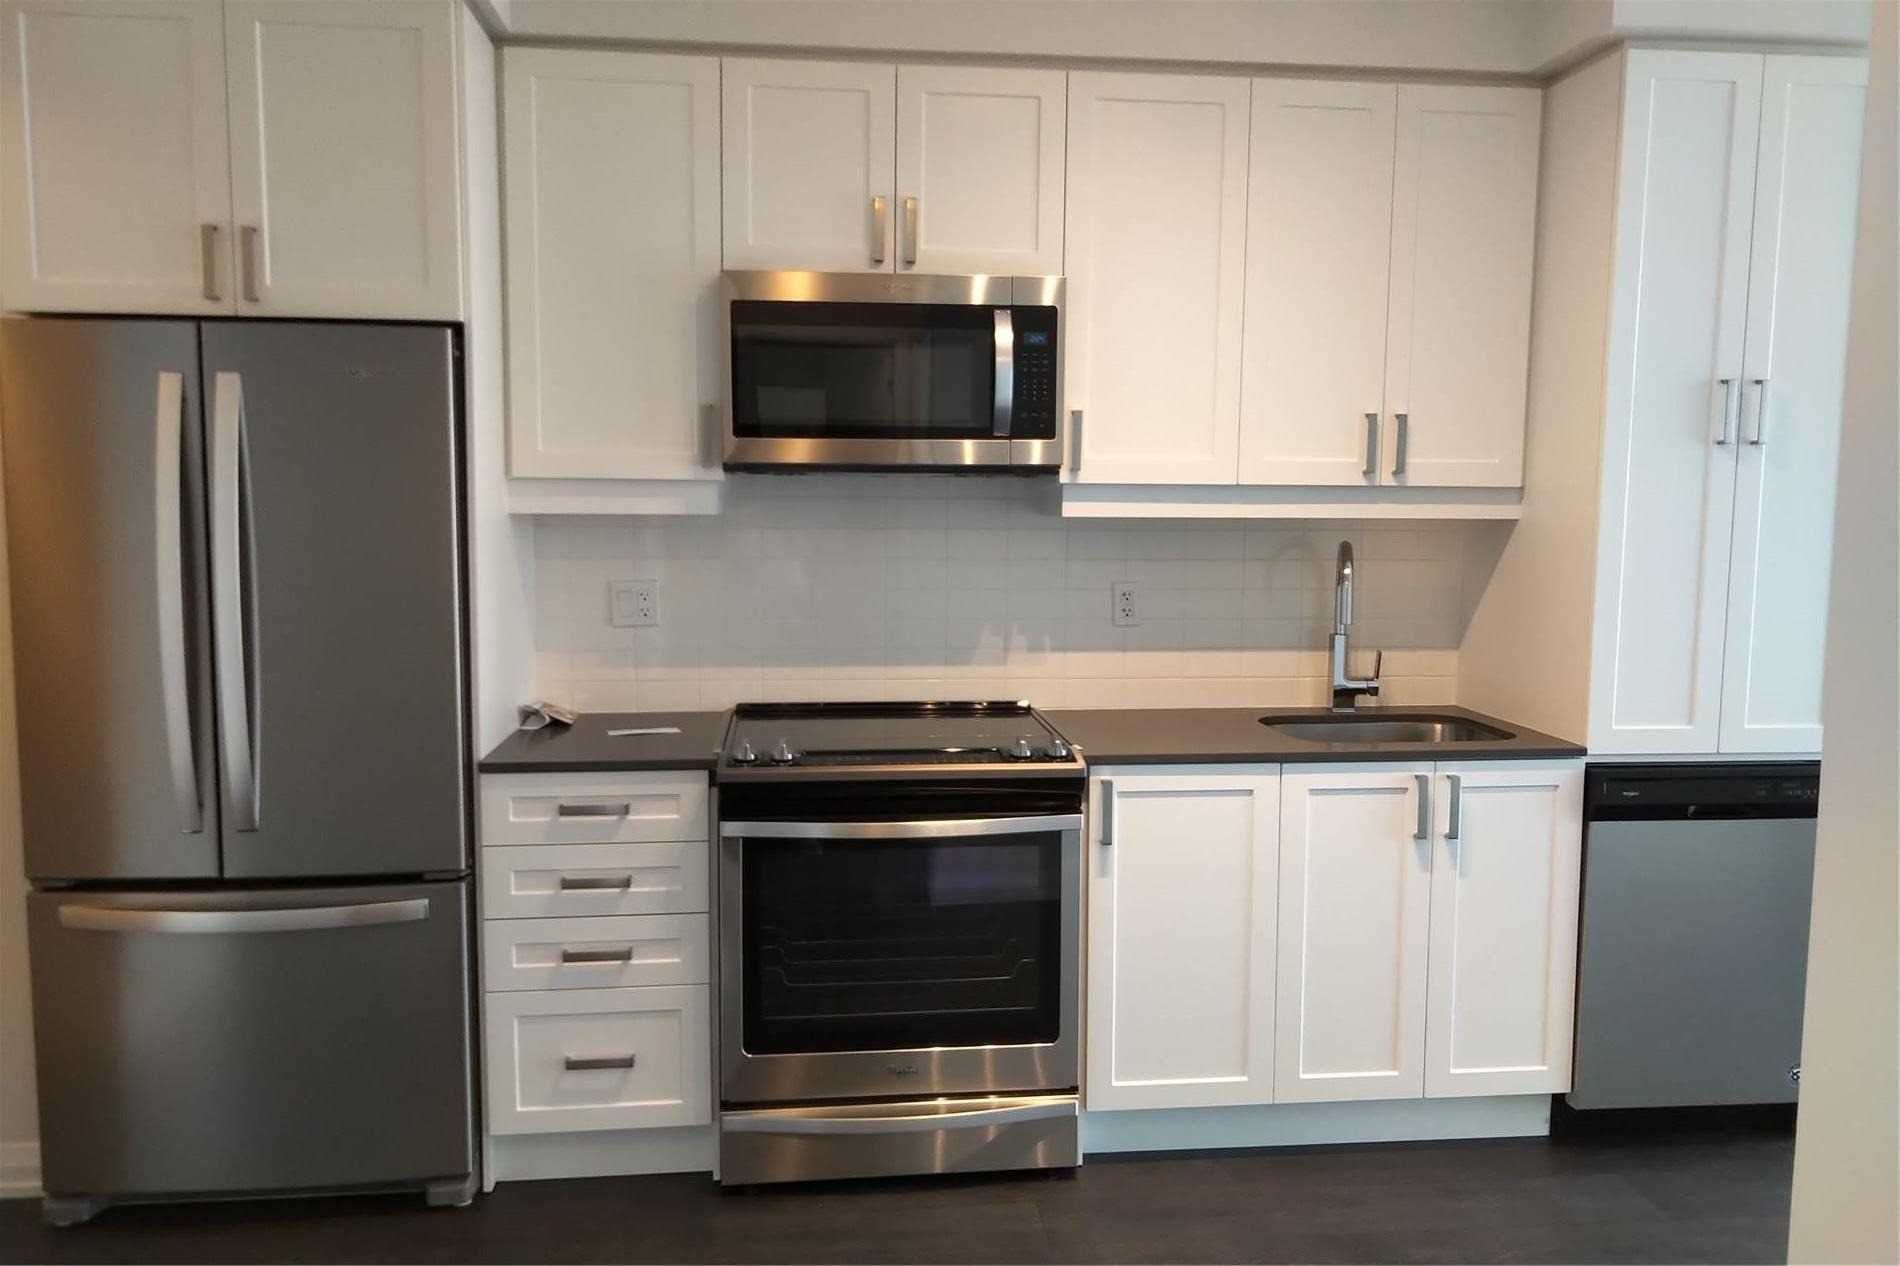 7895 Jane St, unit 3018 for sale in Toronto - image #2